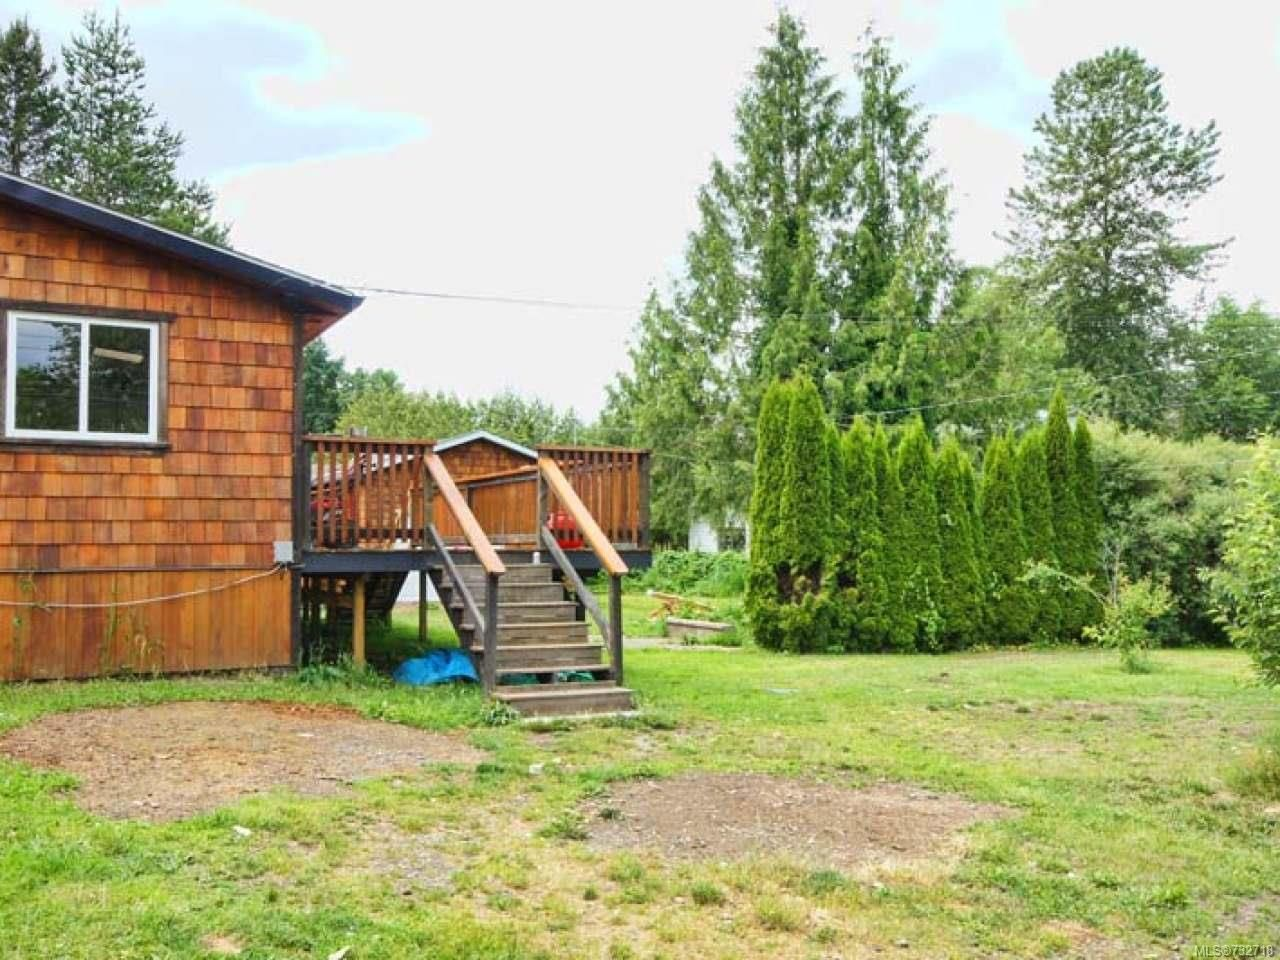 Photo 24: Photos: 921 POPLAR Way in ERRINGTON: PQ Errington/Coombs/Hilliers Manufactured Home for sale (Parksville/Qualicum)  : MLS®# 732718